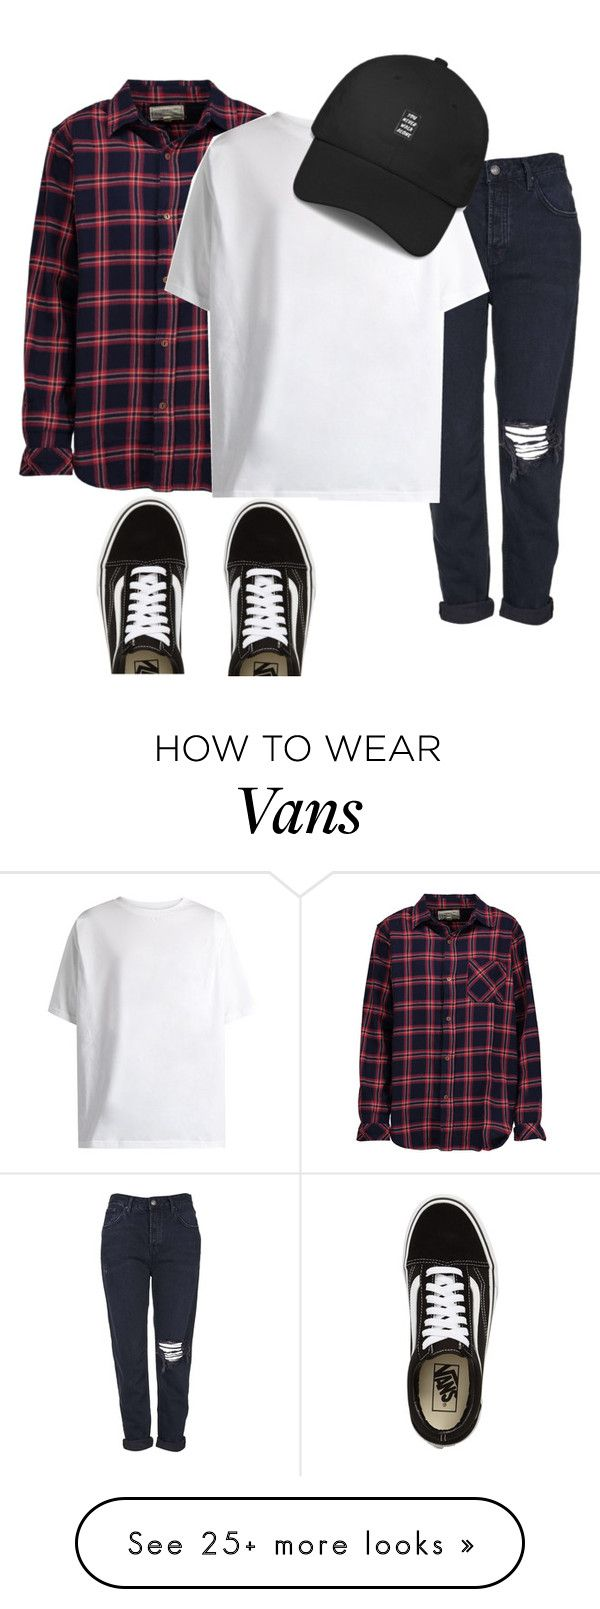 """hip hop style"" by brave-women on Polyvore featuring Topshop, Current/Elliott, Martine Rose and Vans"